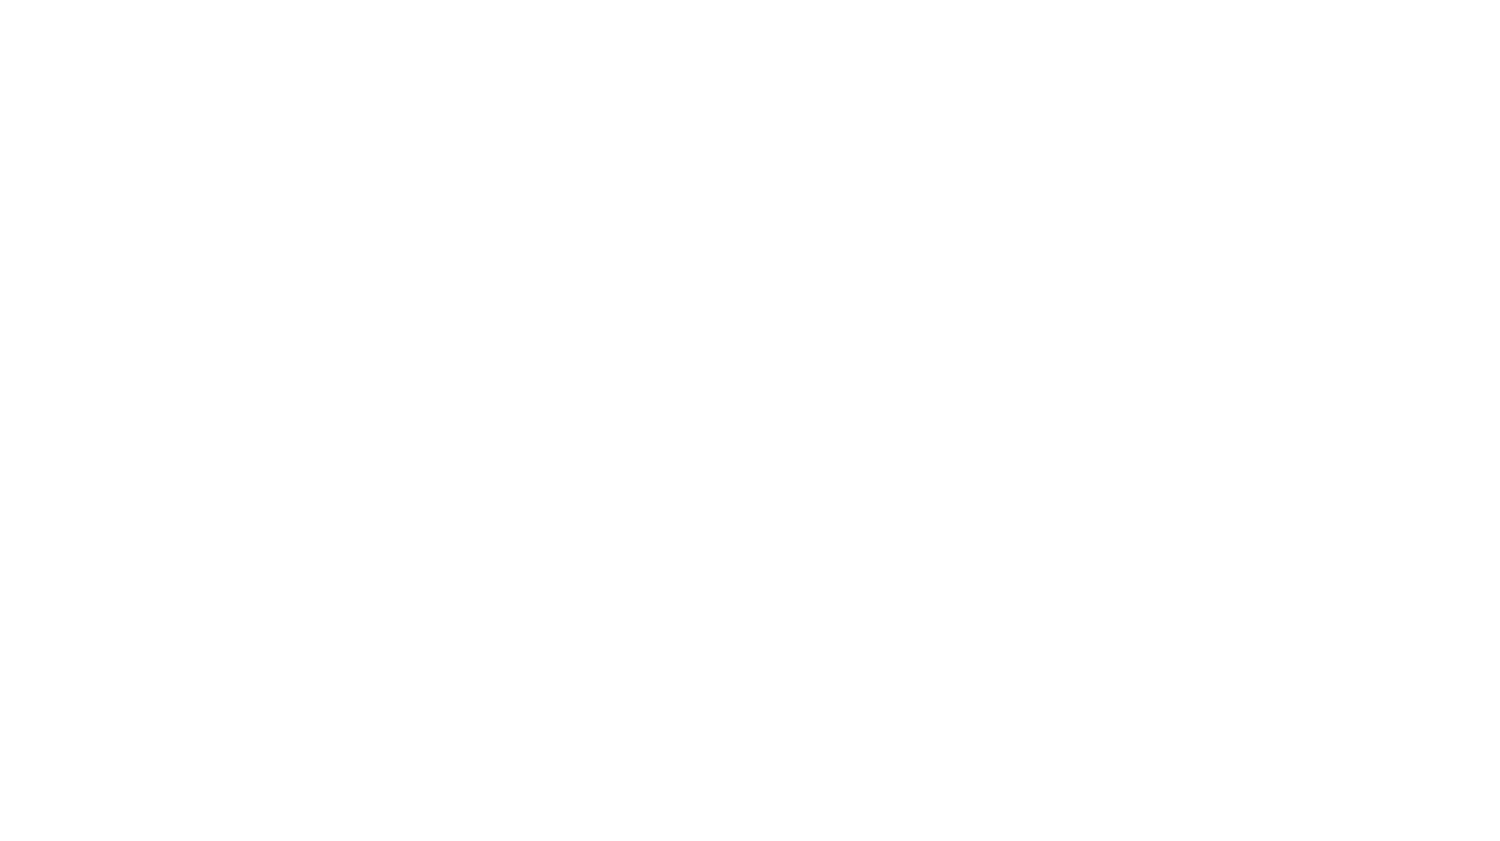 Sea Kayaking Adventures In Cape Town